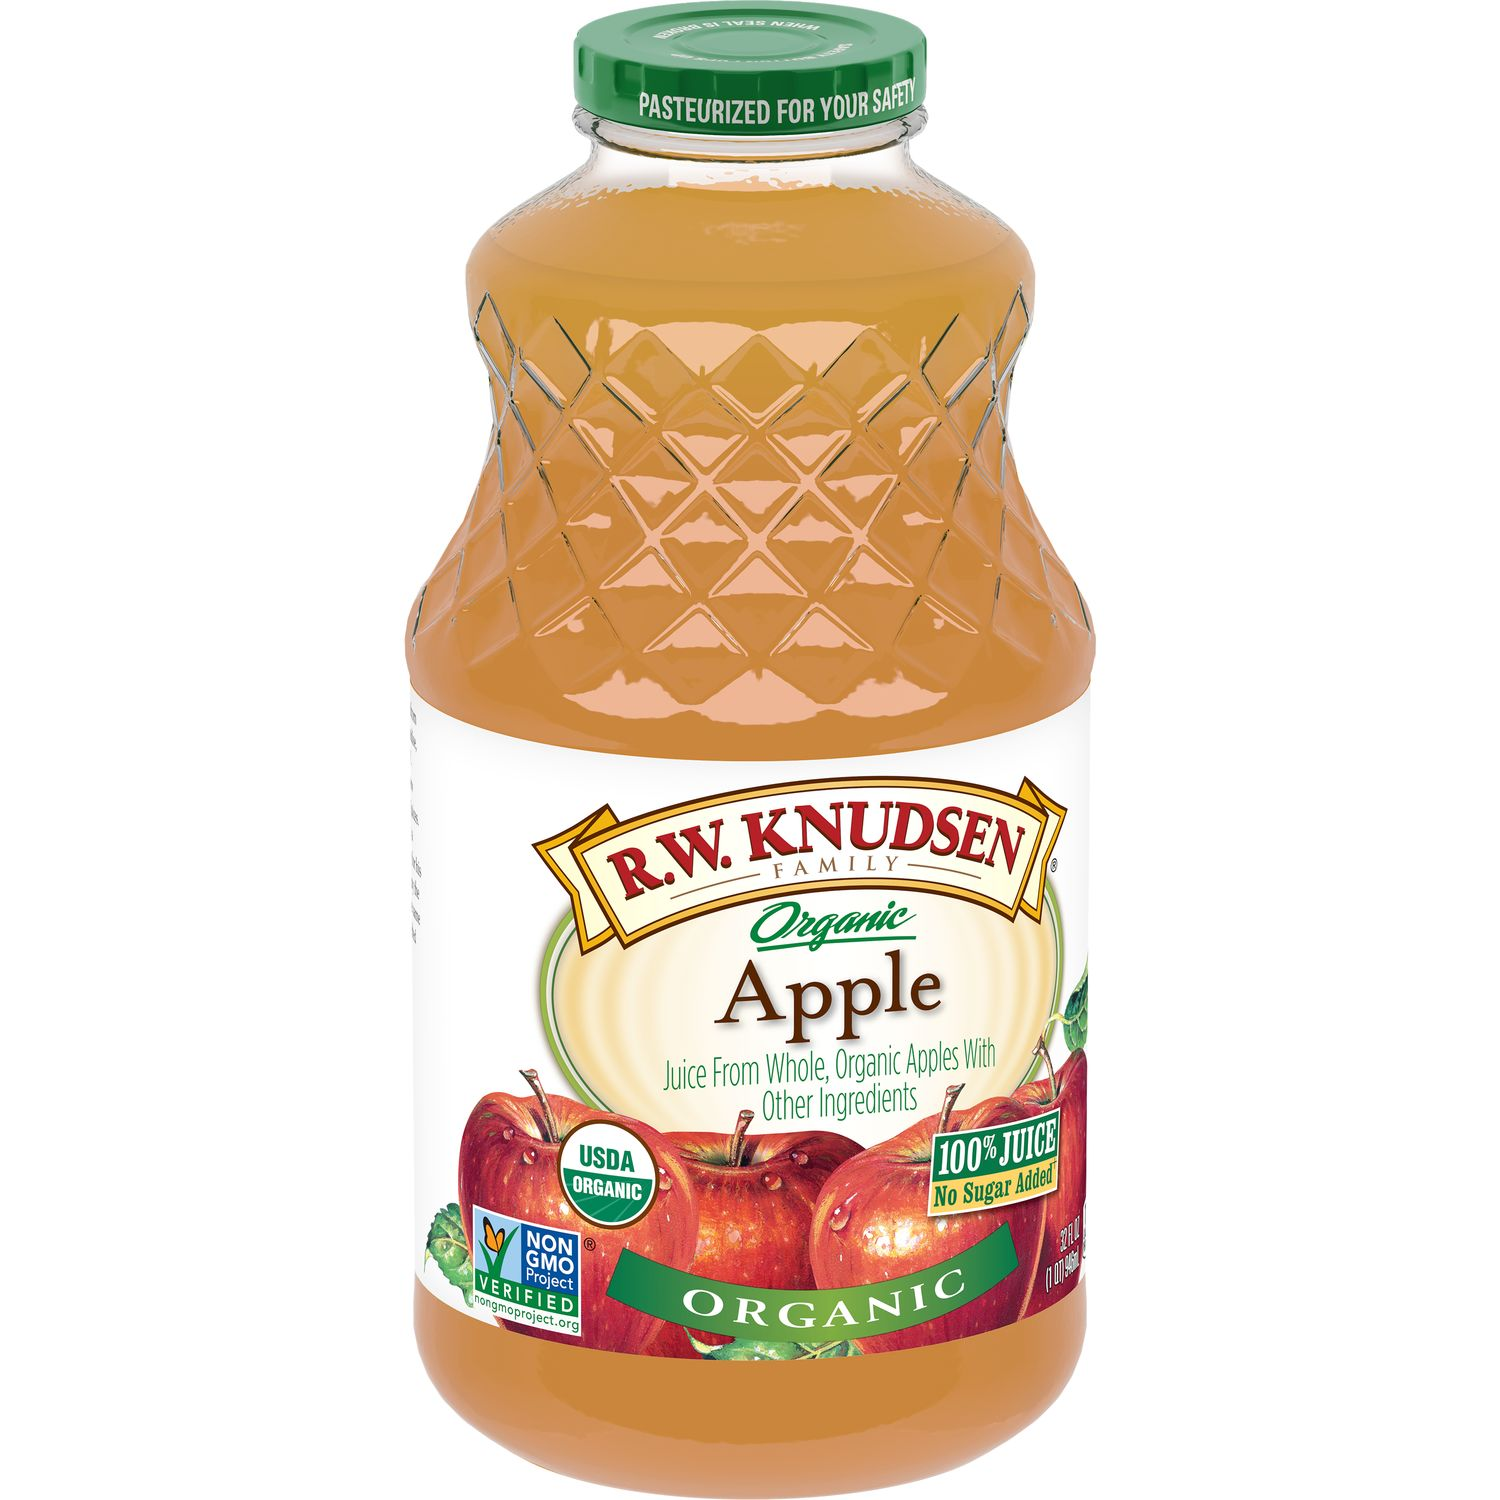 R.W. Knudsen Family Organic Apple Juice, 32 Fl. Oz.